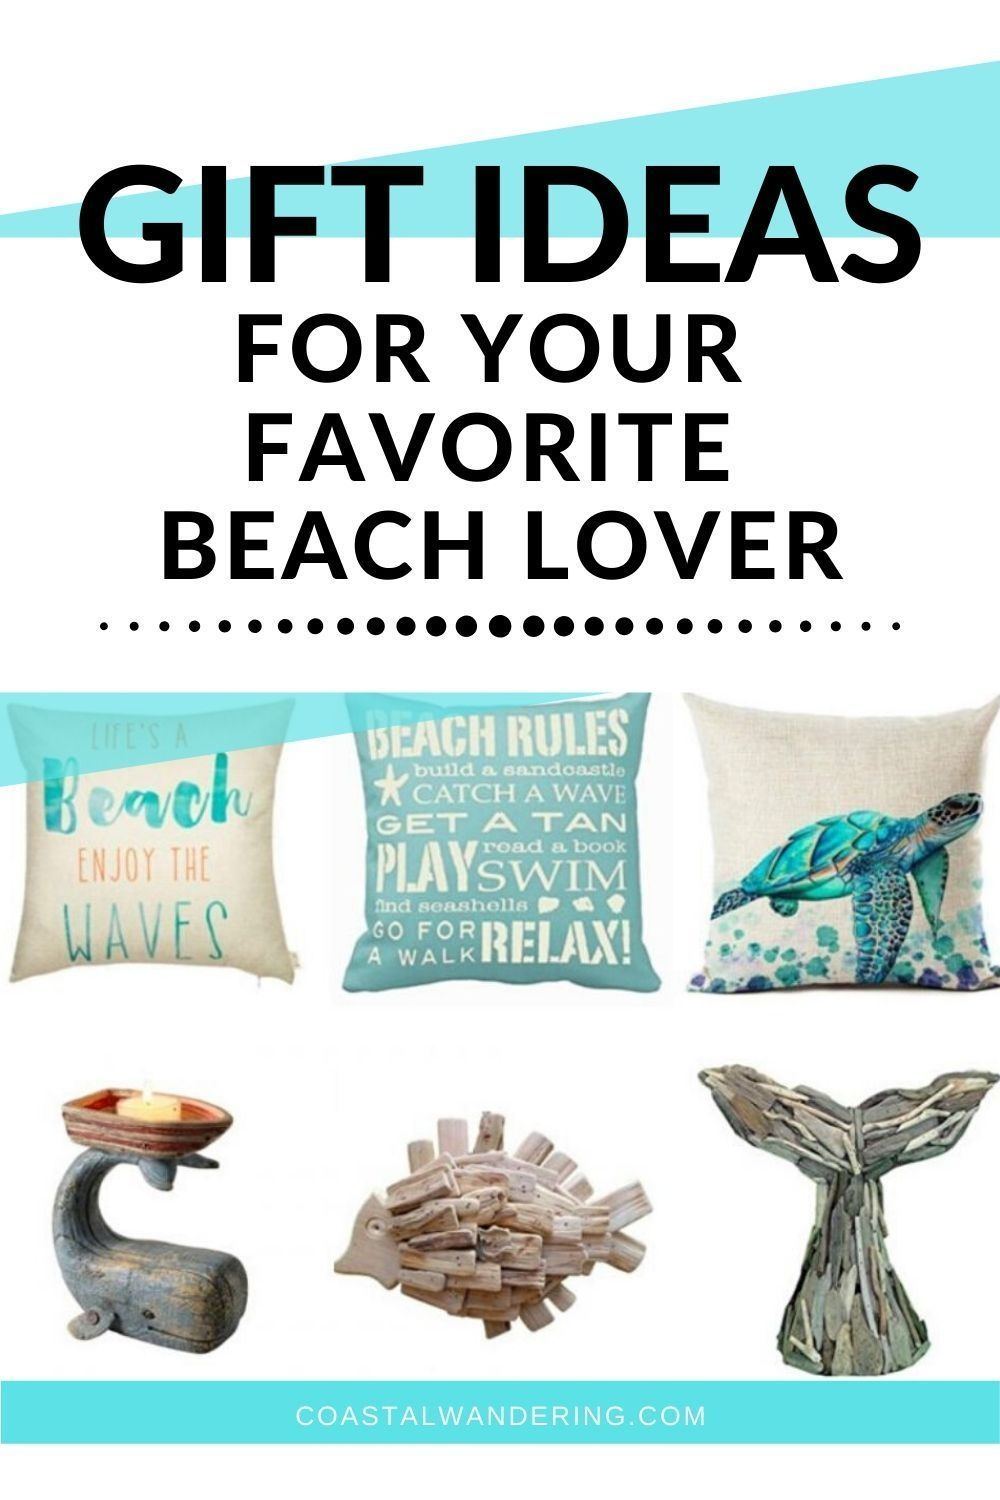 Do you know someone who loves the beach? These beach-inspired gifts will have them dreaming of their last beach vacation! From wall art to throw pillows to lanterns and candles, this gift guide has so many beach inspired gifts to bring the seashore home. There are even nautical decor and coastal gifts that can be used on the porch, patio, or deck. #travelgiftguide #nauticaldecor #beachlover